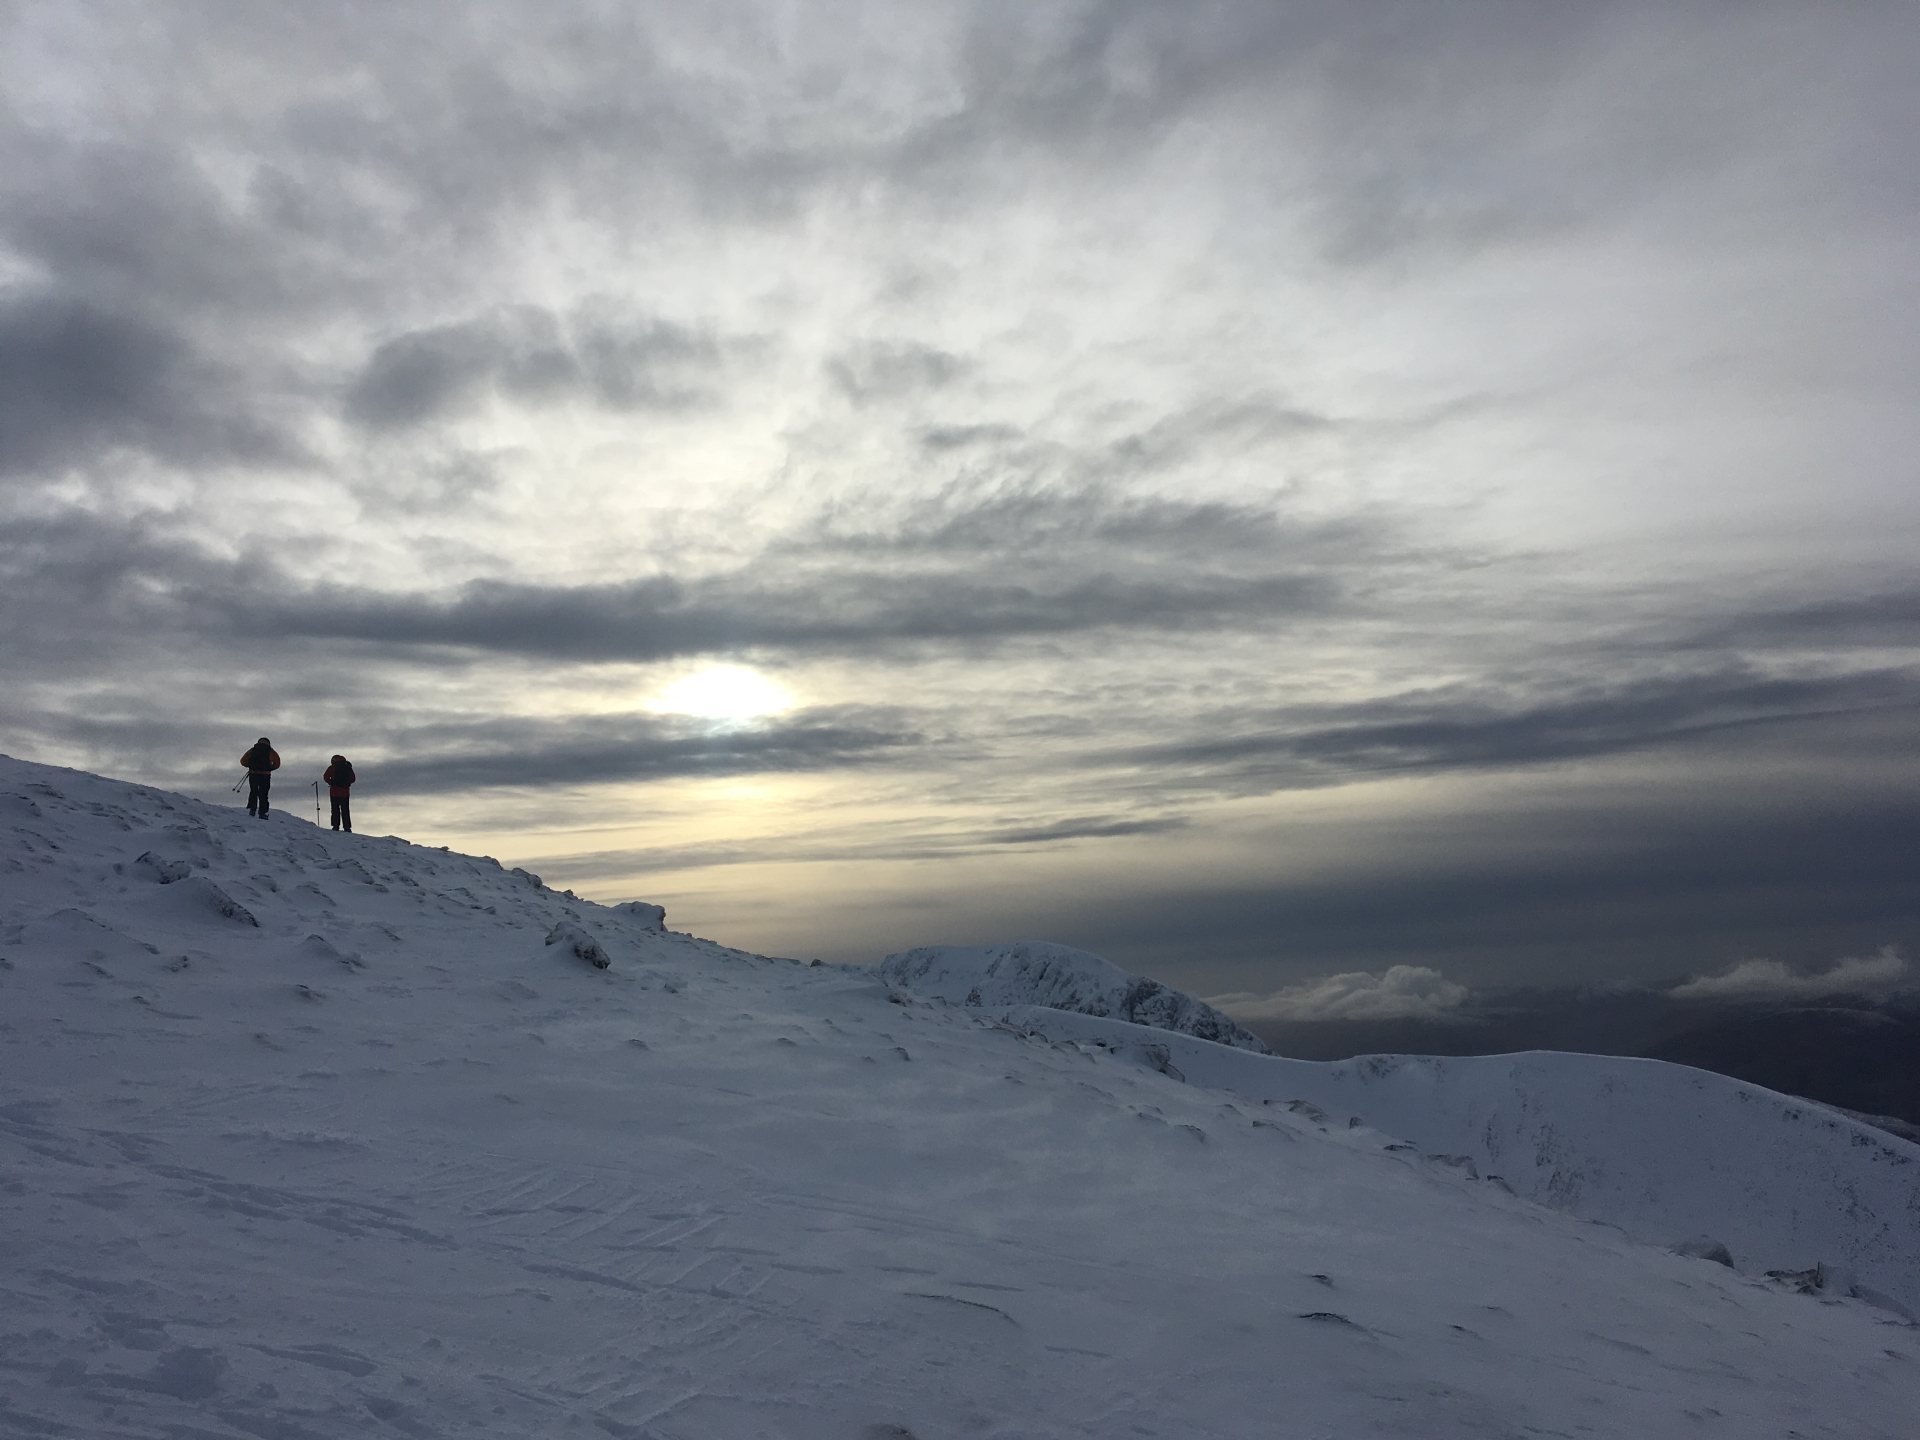 Drovers Day Trip - Nevis Range